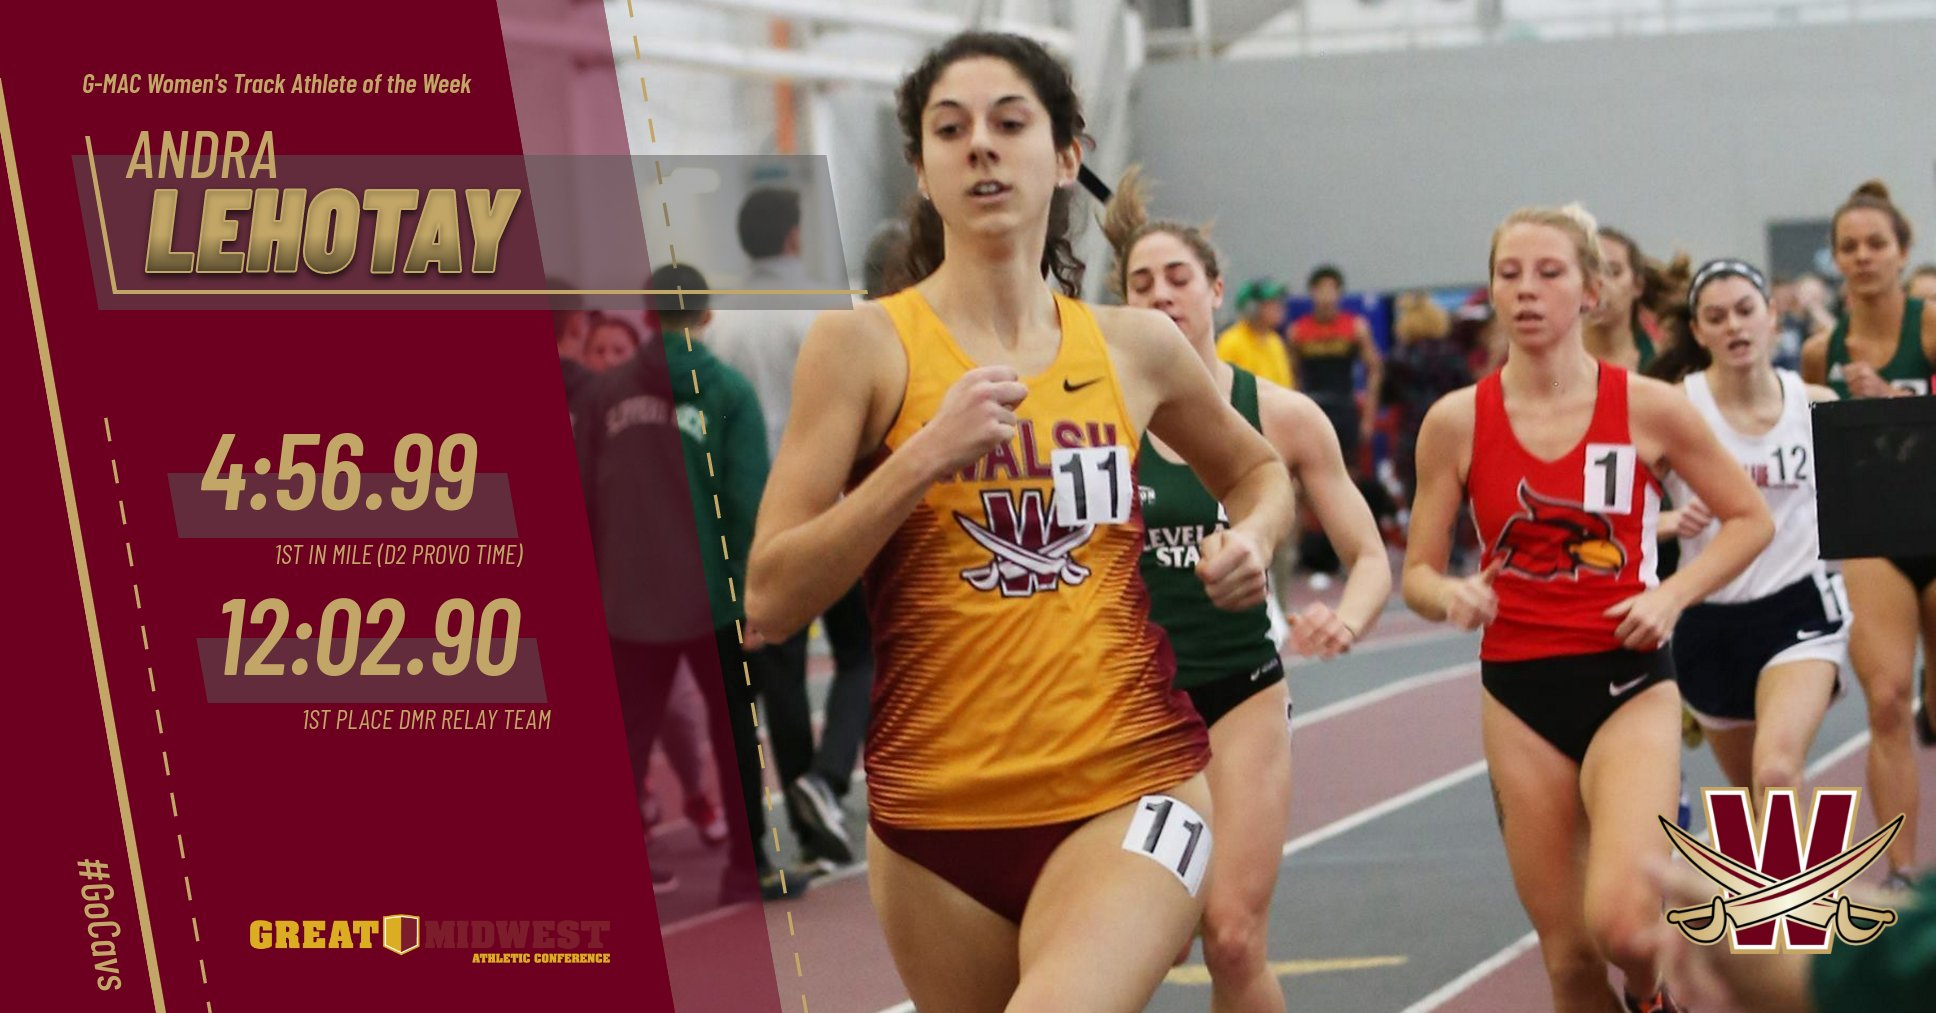 Andra Lehotay Named G-MAC Track Athlete of the Week